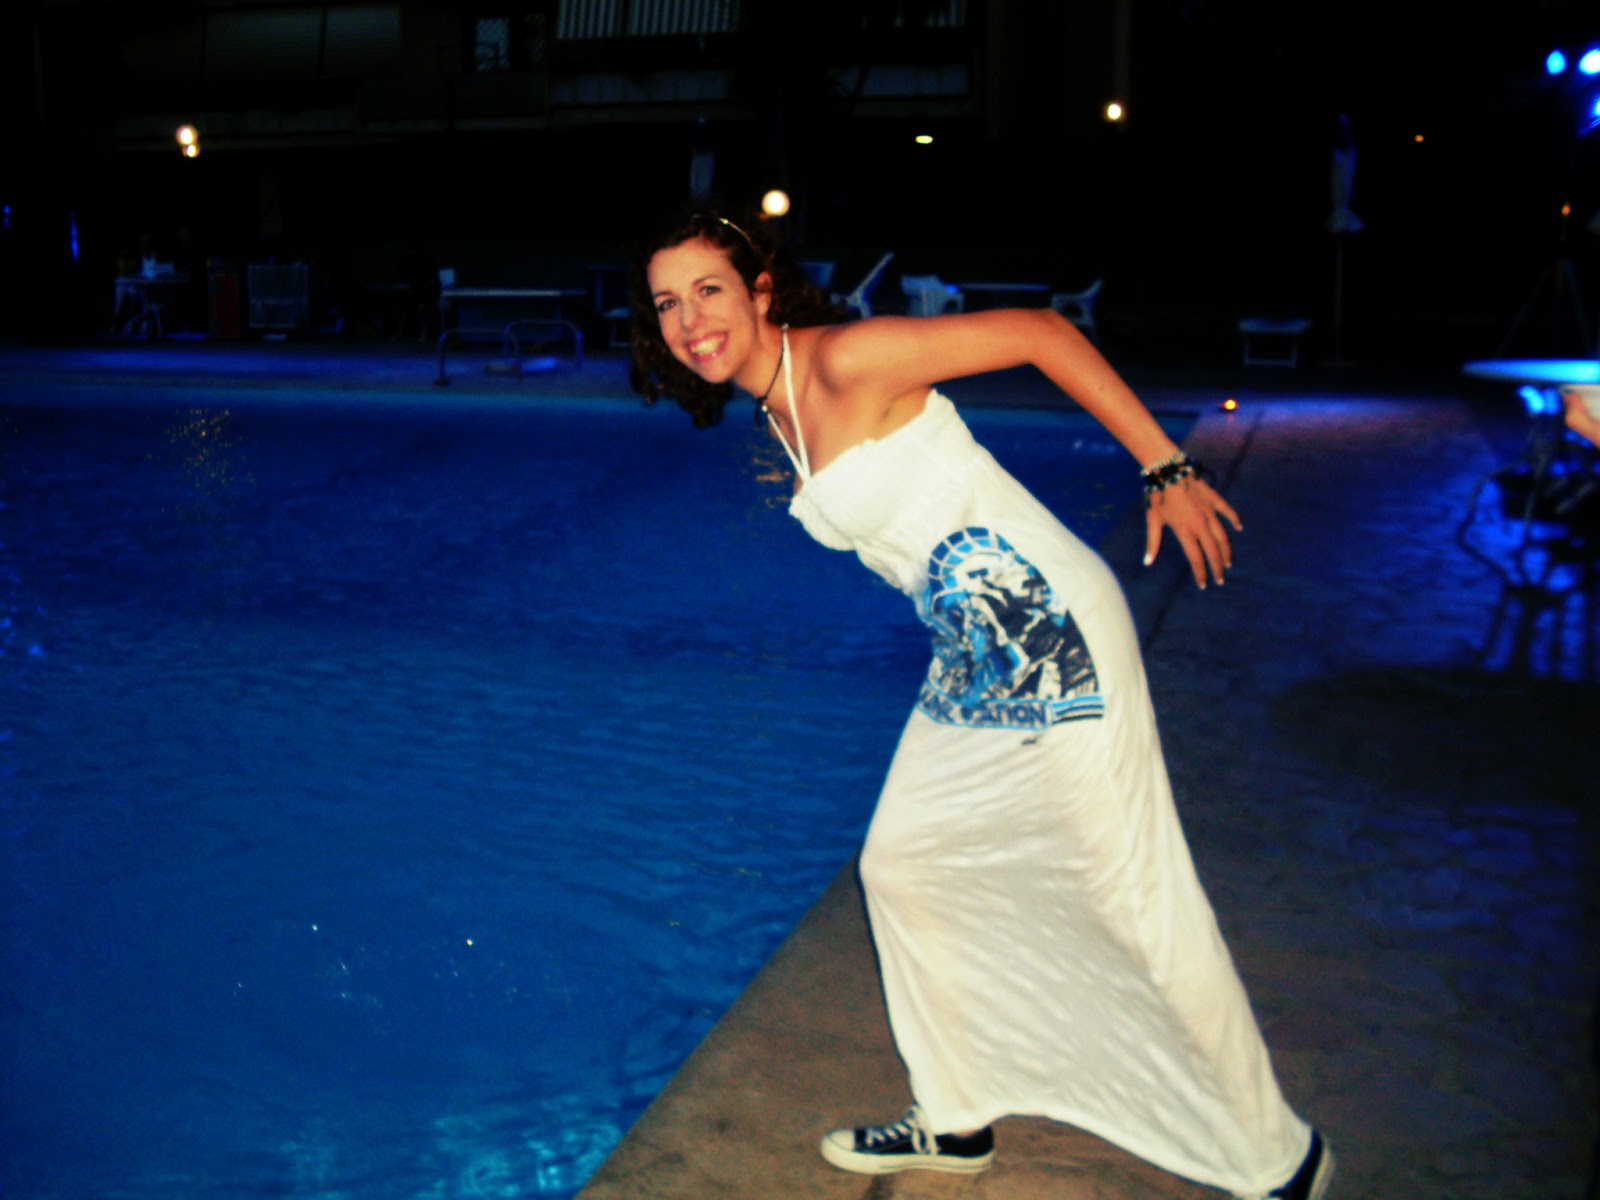 http://s-fashion-avenue.blogspot.it/2013/07/maxi-dress-for-pool-party.html